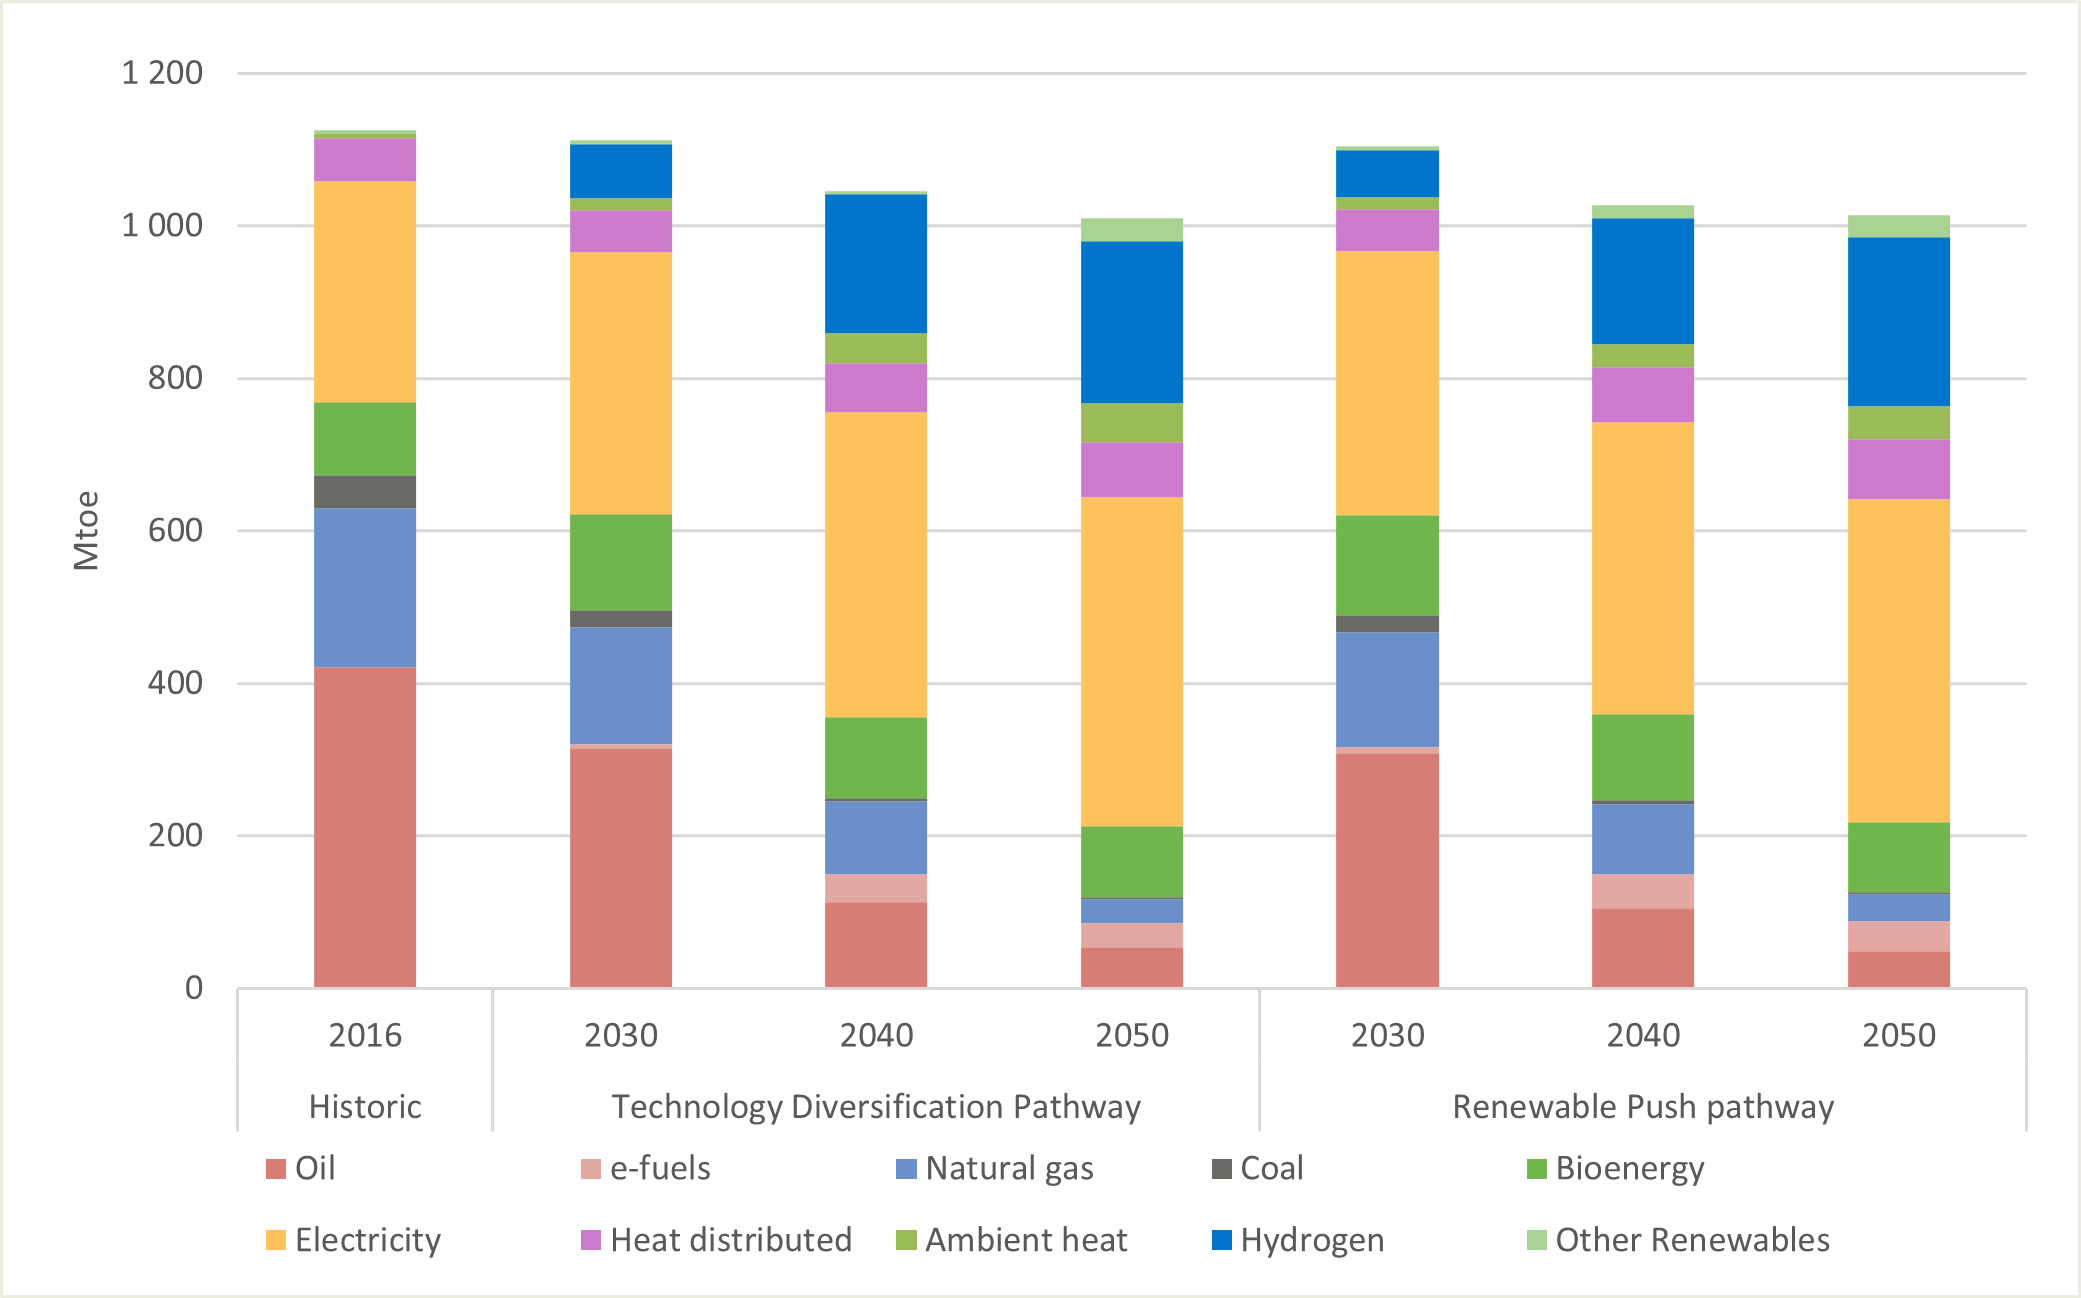 Evolution of gross final energy consumption in the Technology Diversification and Renewable Push pathways, 2016 to 2050